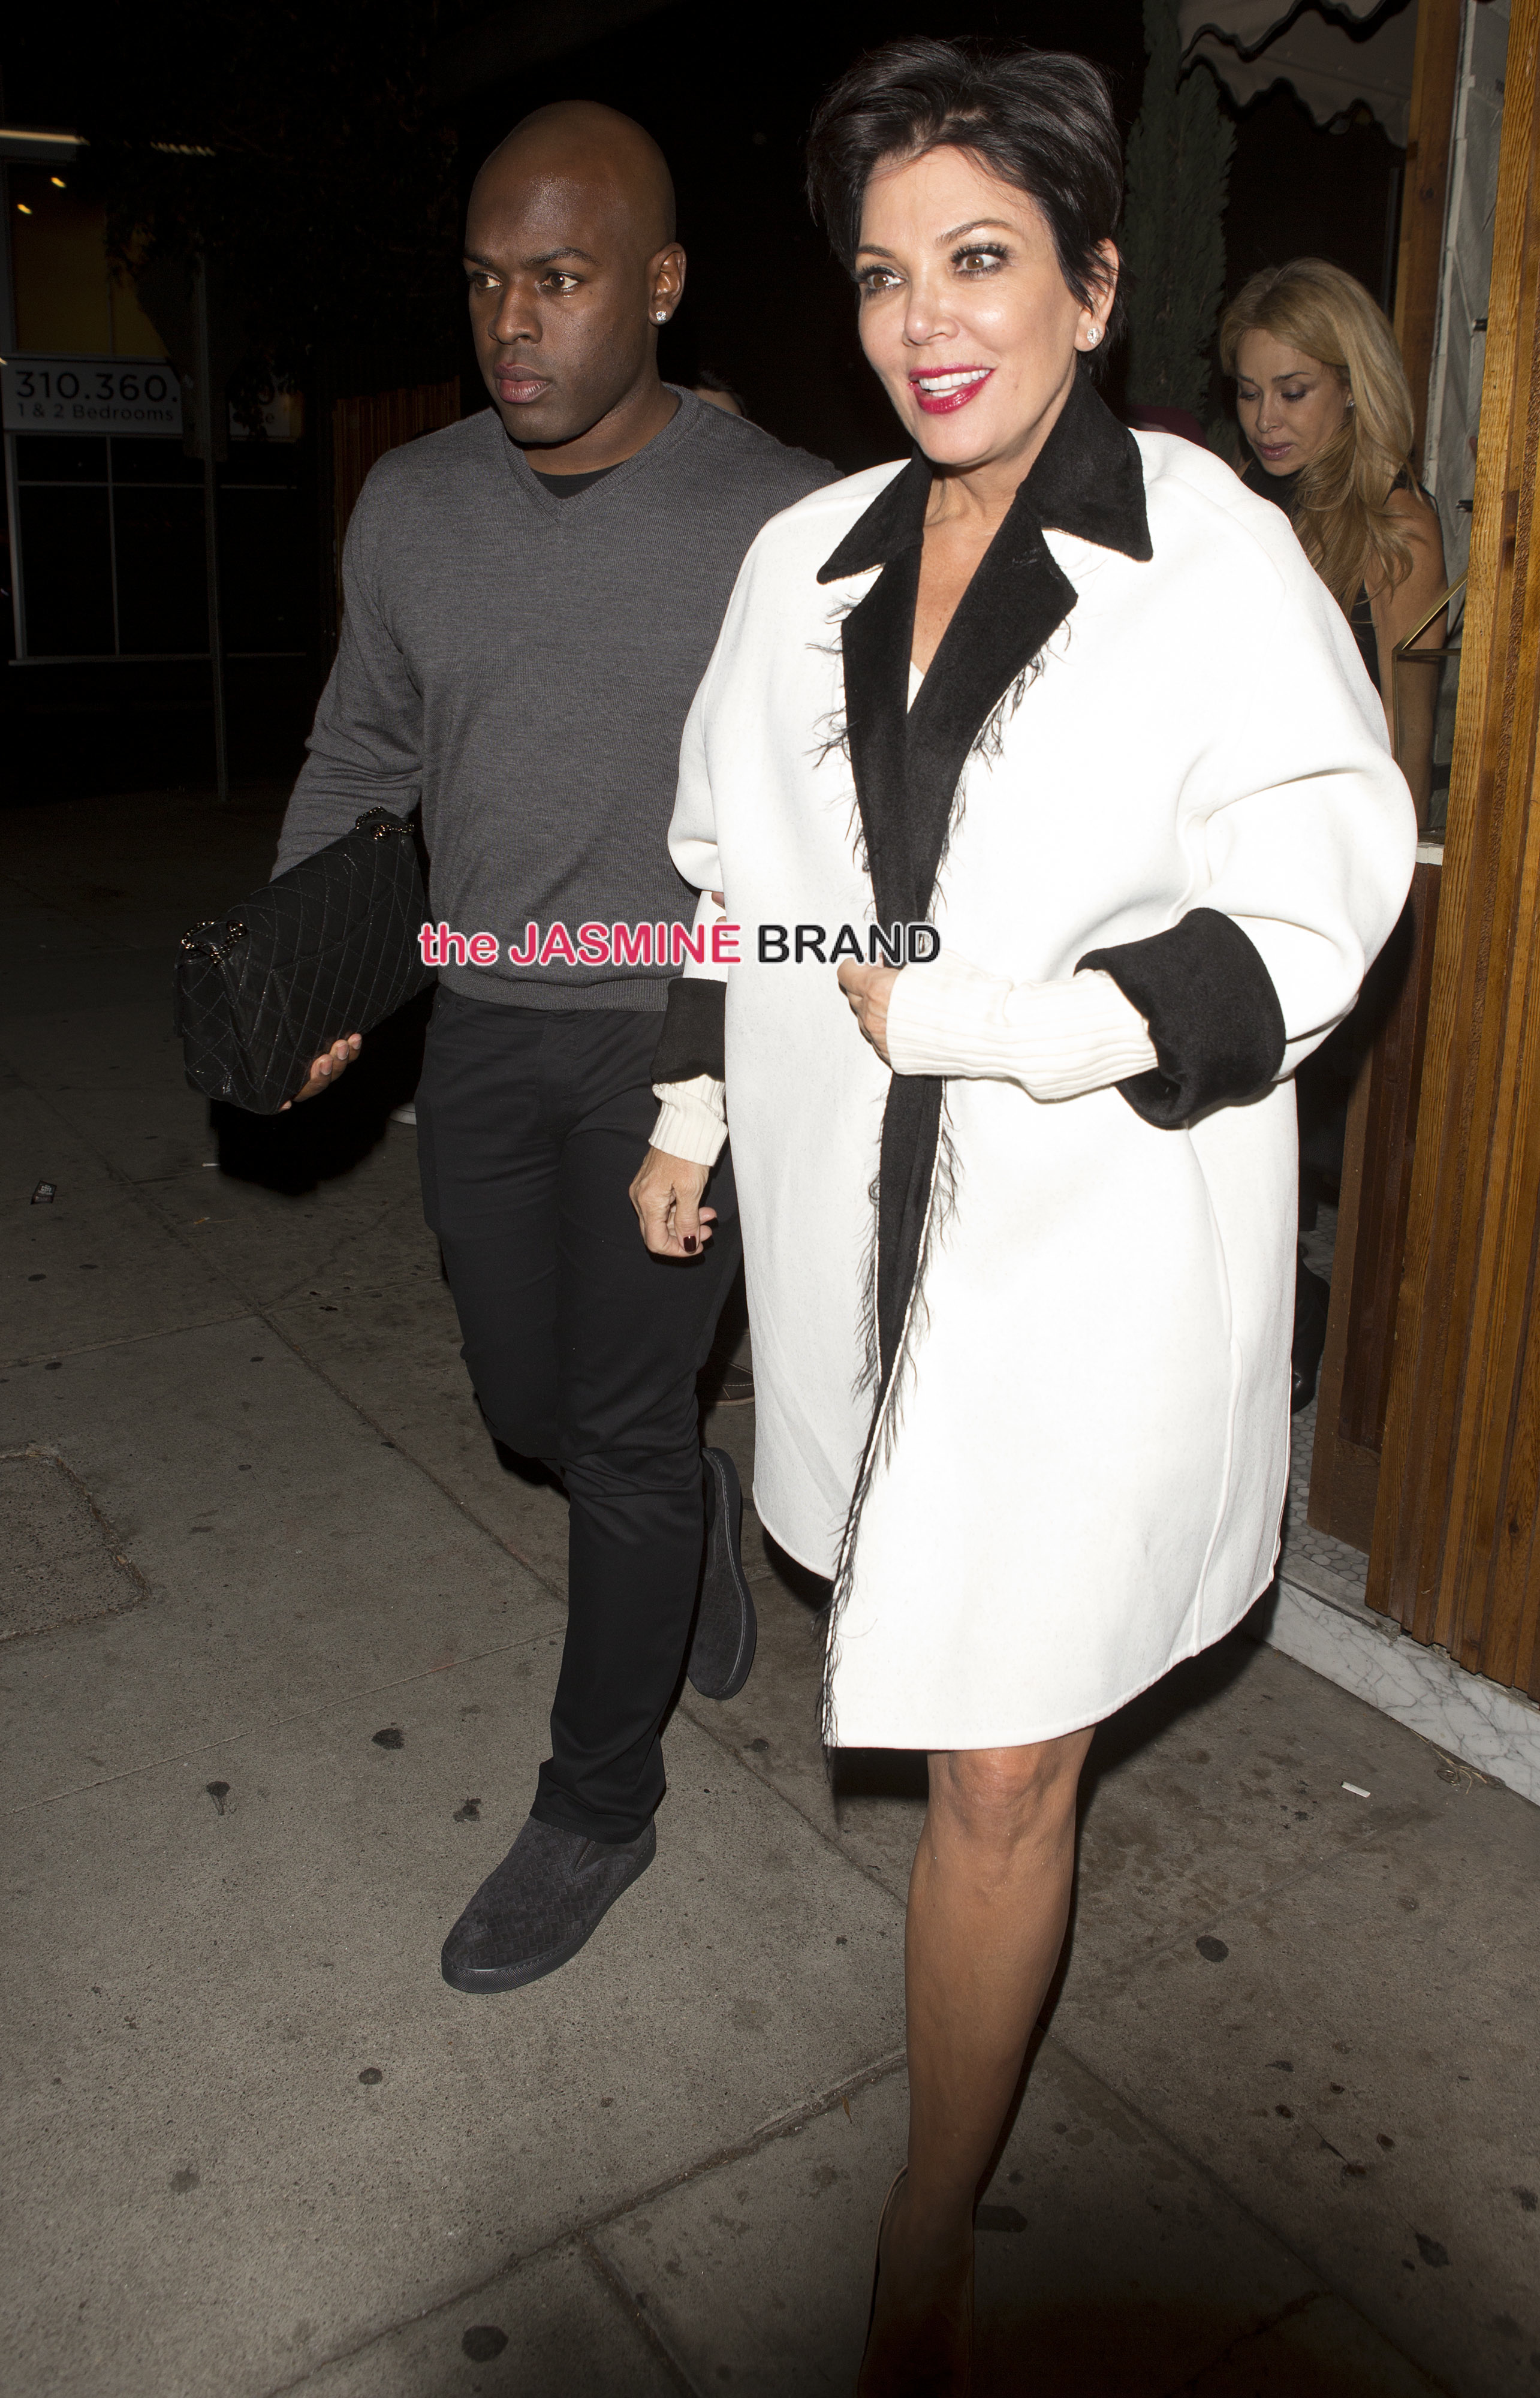 Kris Jenner looking worse for wear holding the arm on new boyfriend Corey Gamble as they were seen leaving 'The Nice Guy' Bar in West Hollywood, CA